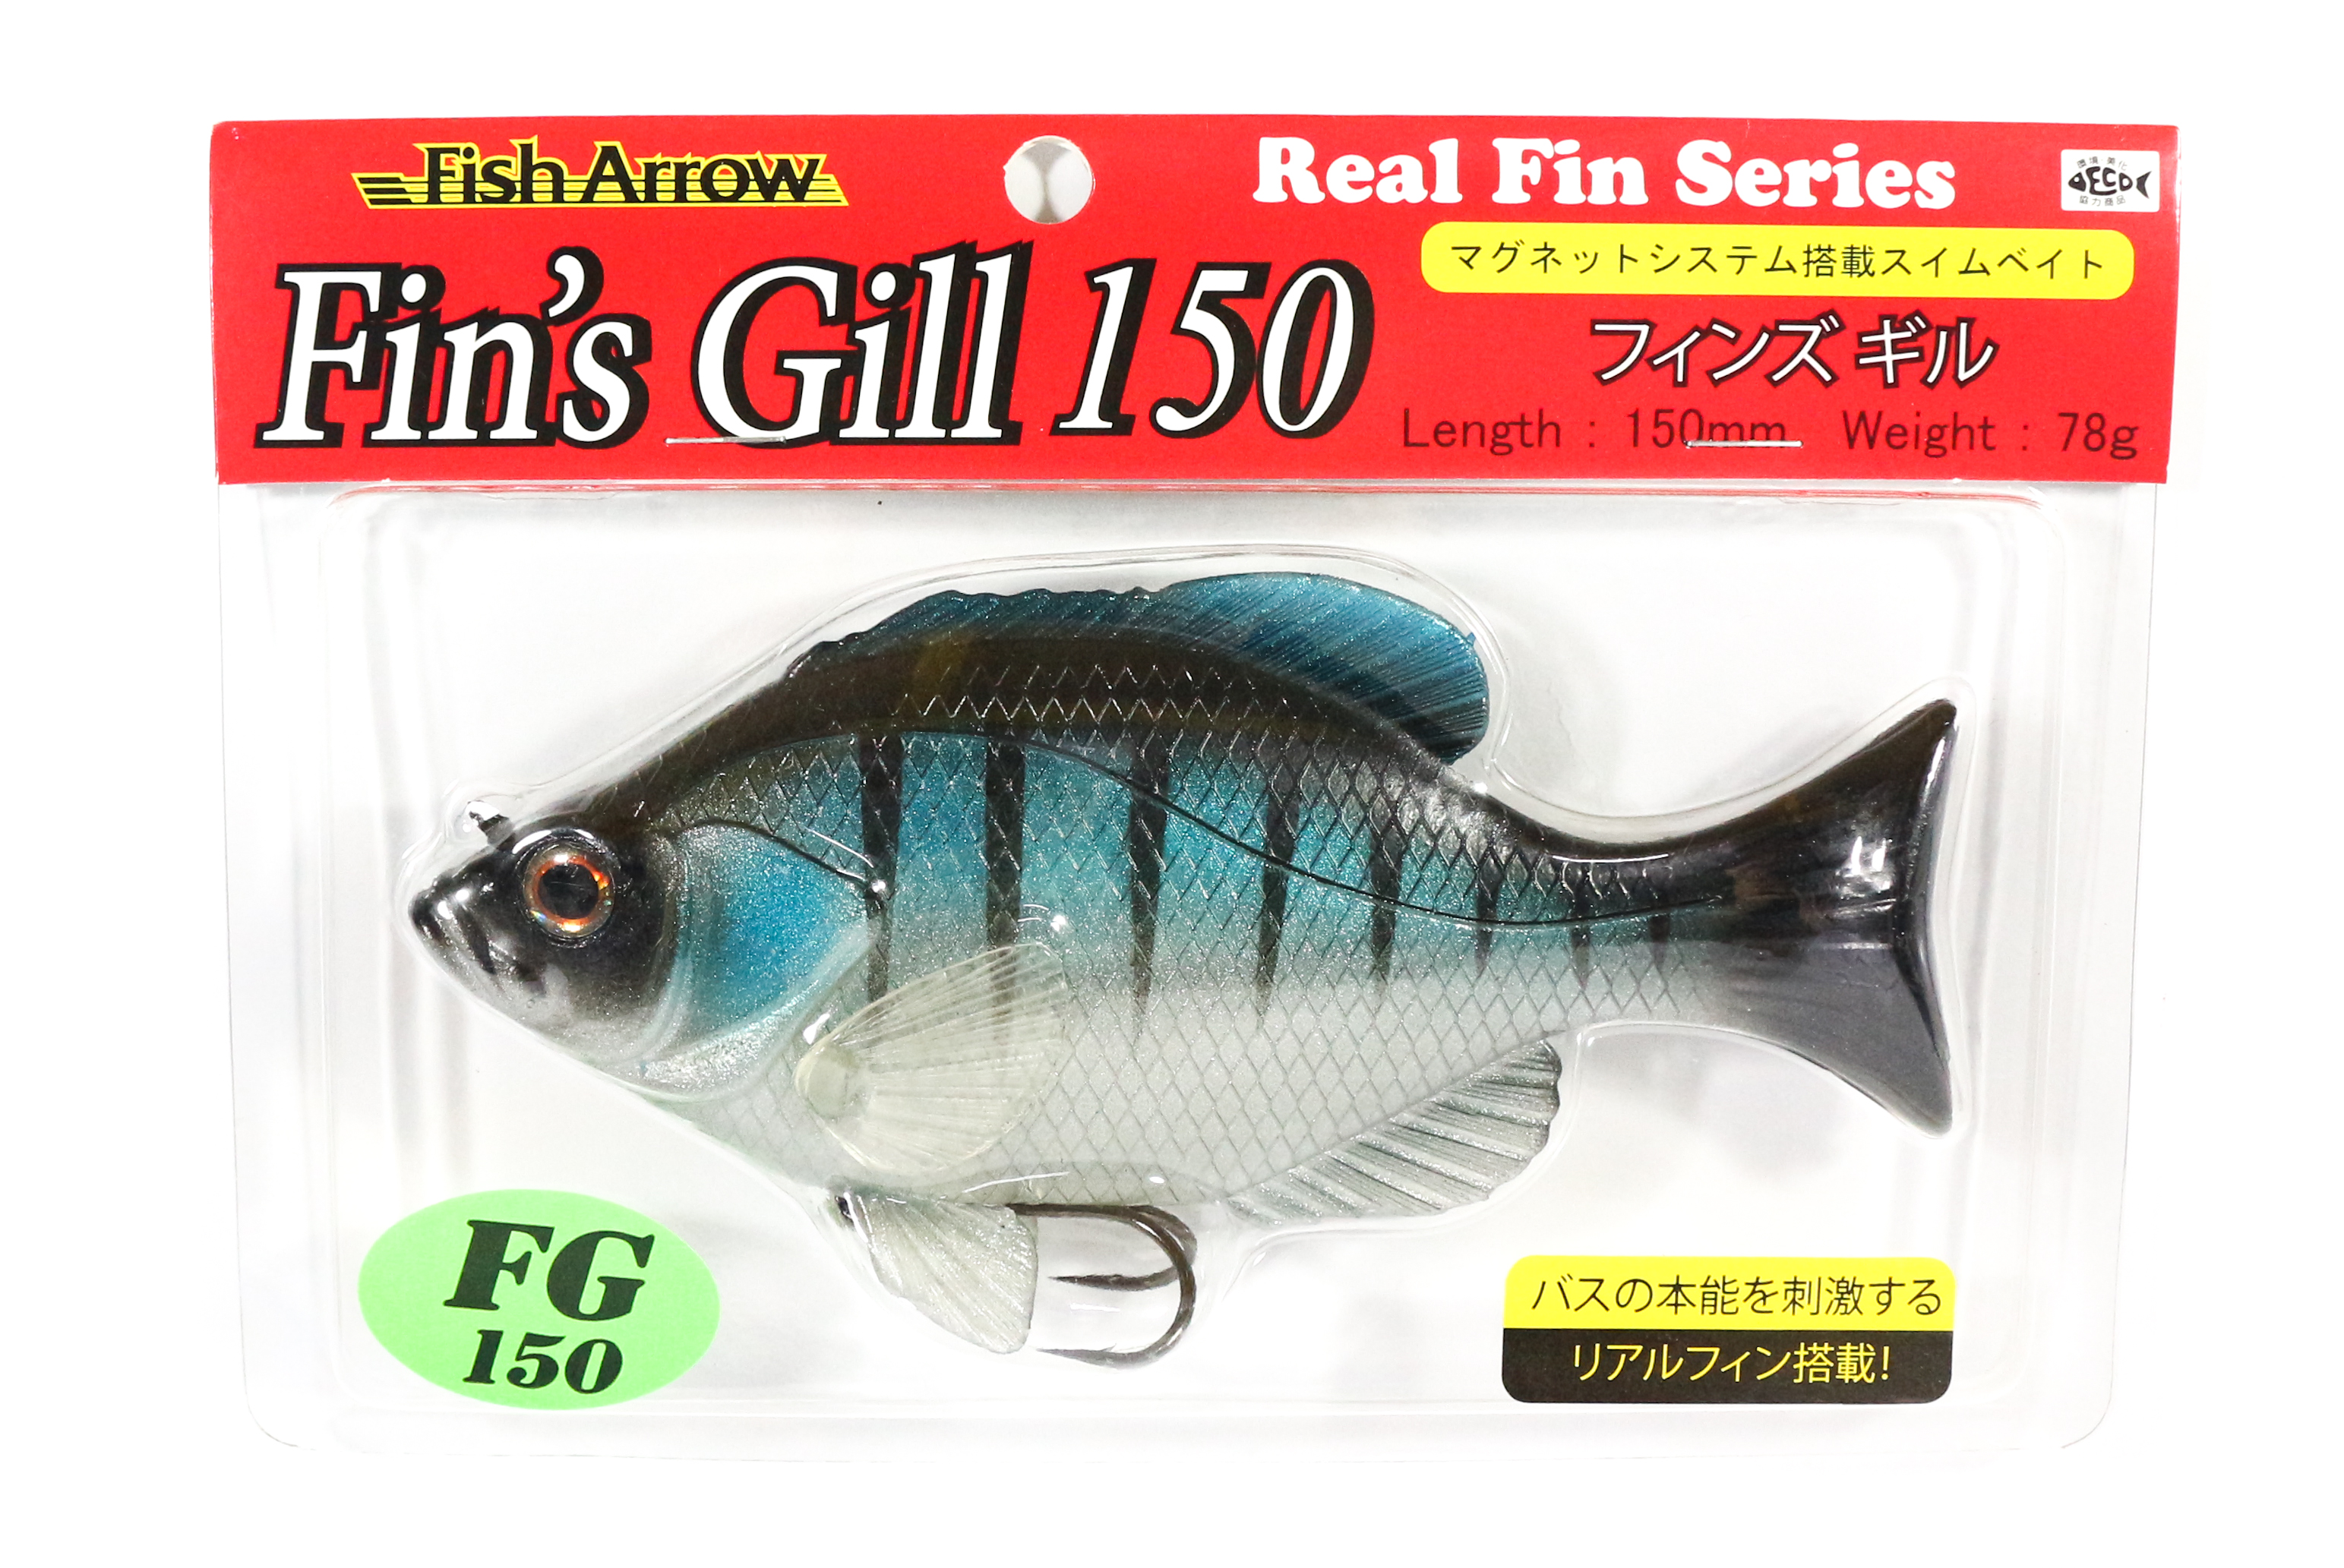 Fish Arrow Soft Lure Fin's Gill 150 78 gram 150 mm Sinking Lure #04 (9532)